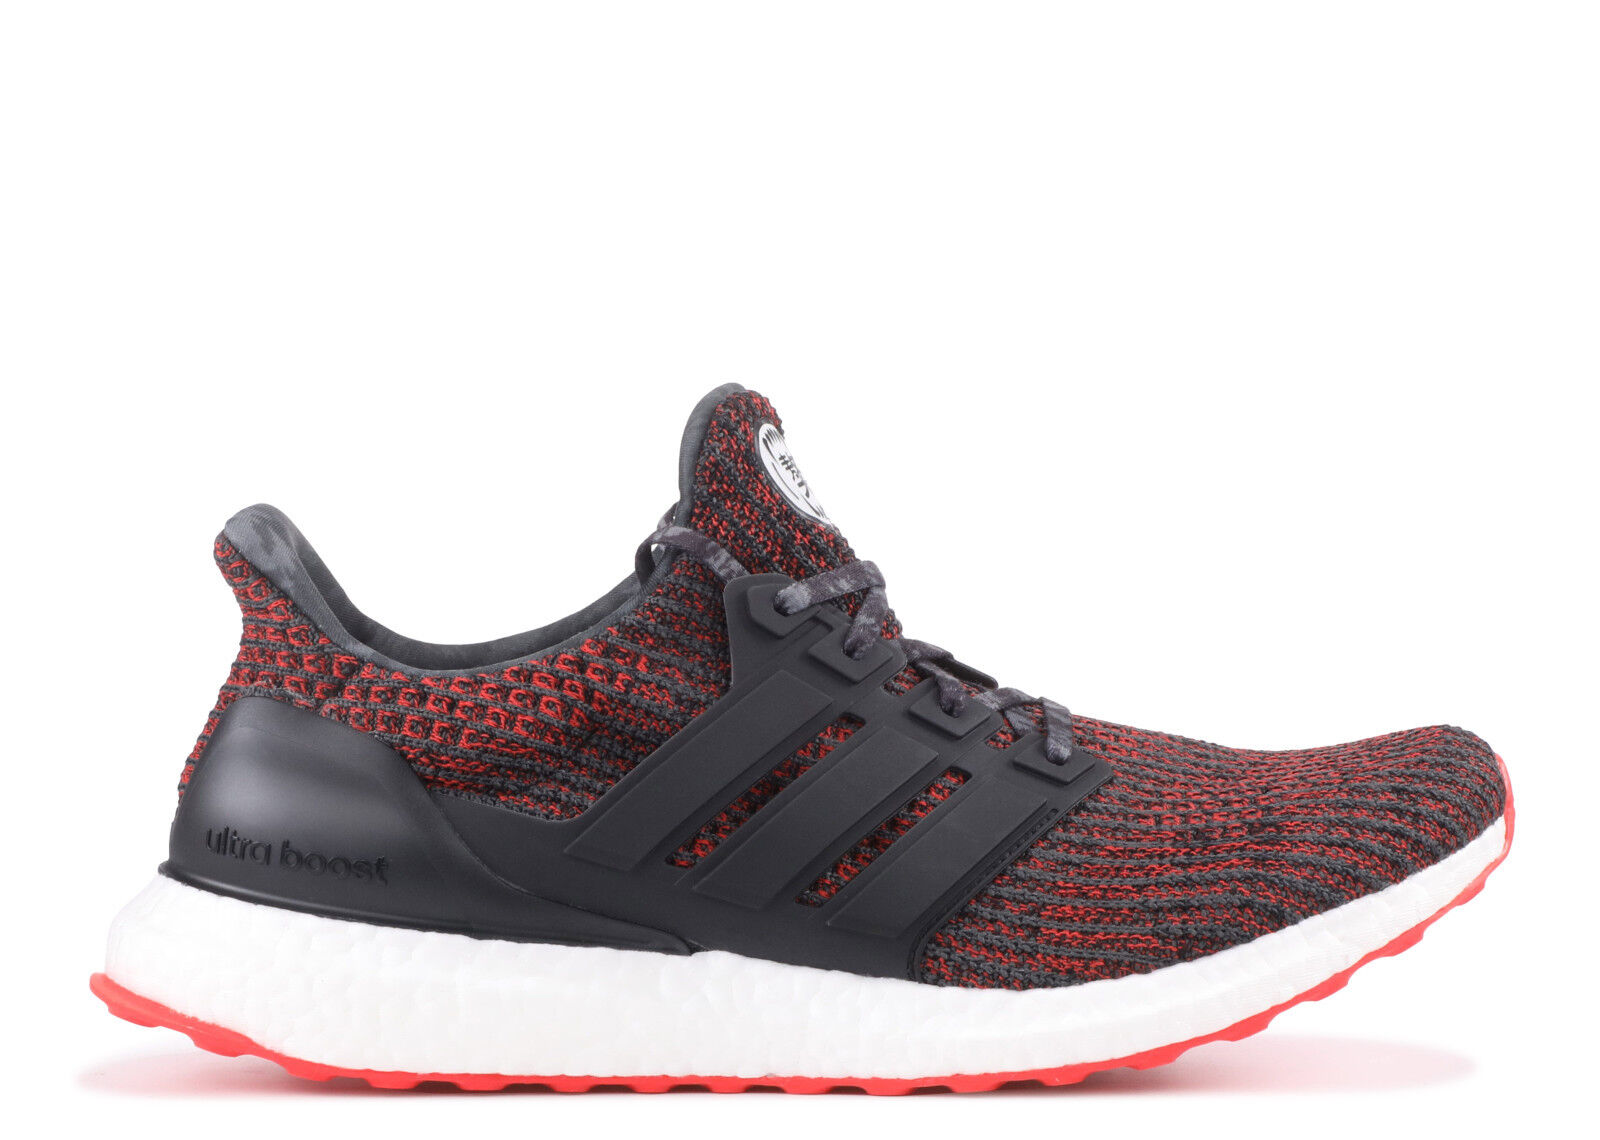 74623bb7d56 adidas Ultra Boost 4.0 CNY (chinese Year) Bb6173 Size 10 UK